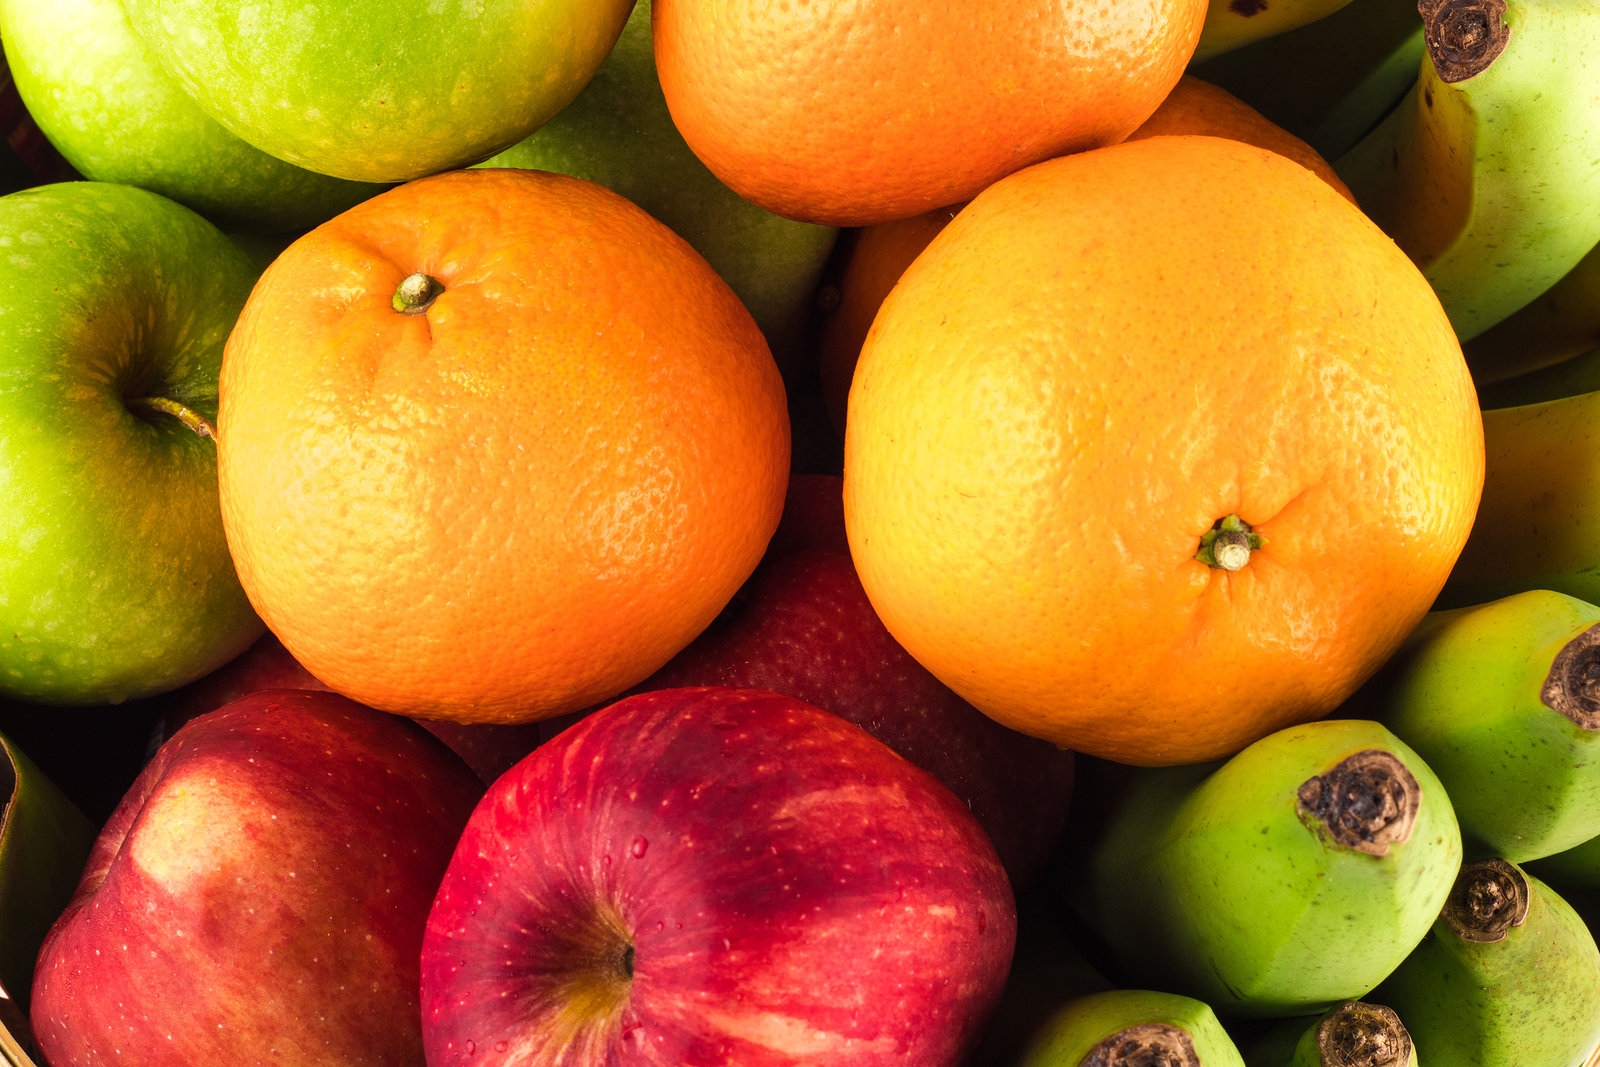 A Closer Look at Apples and Oranges